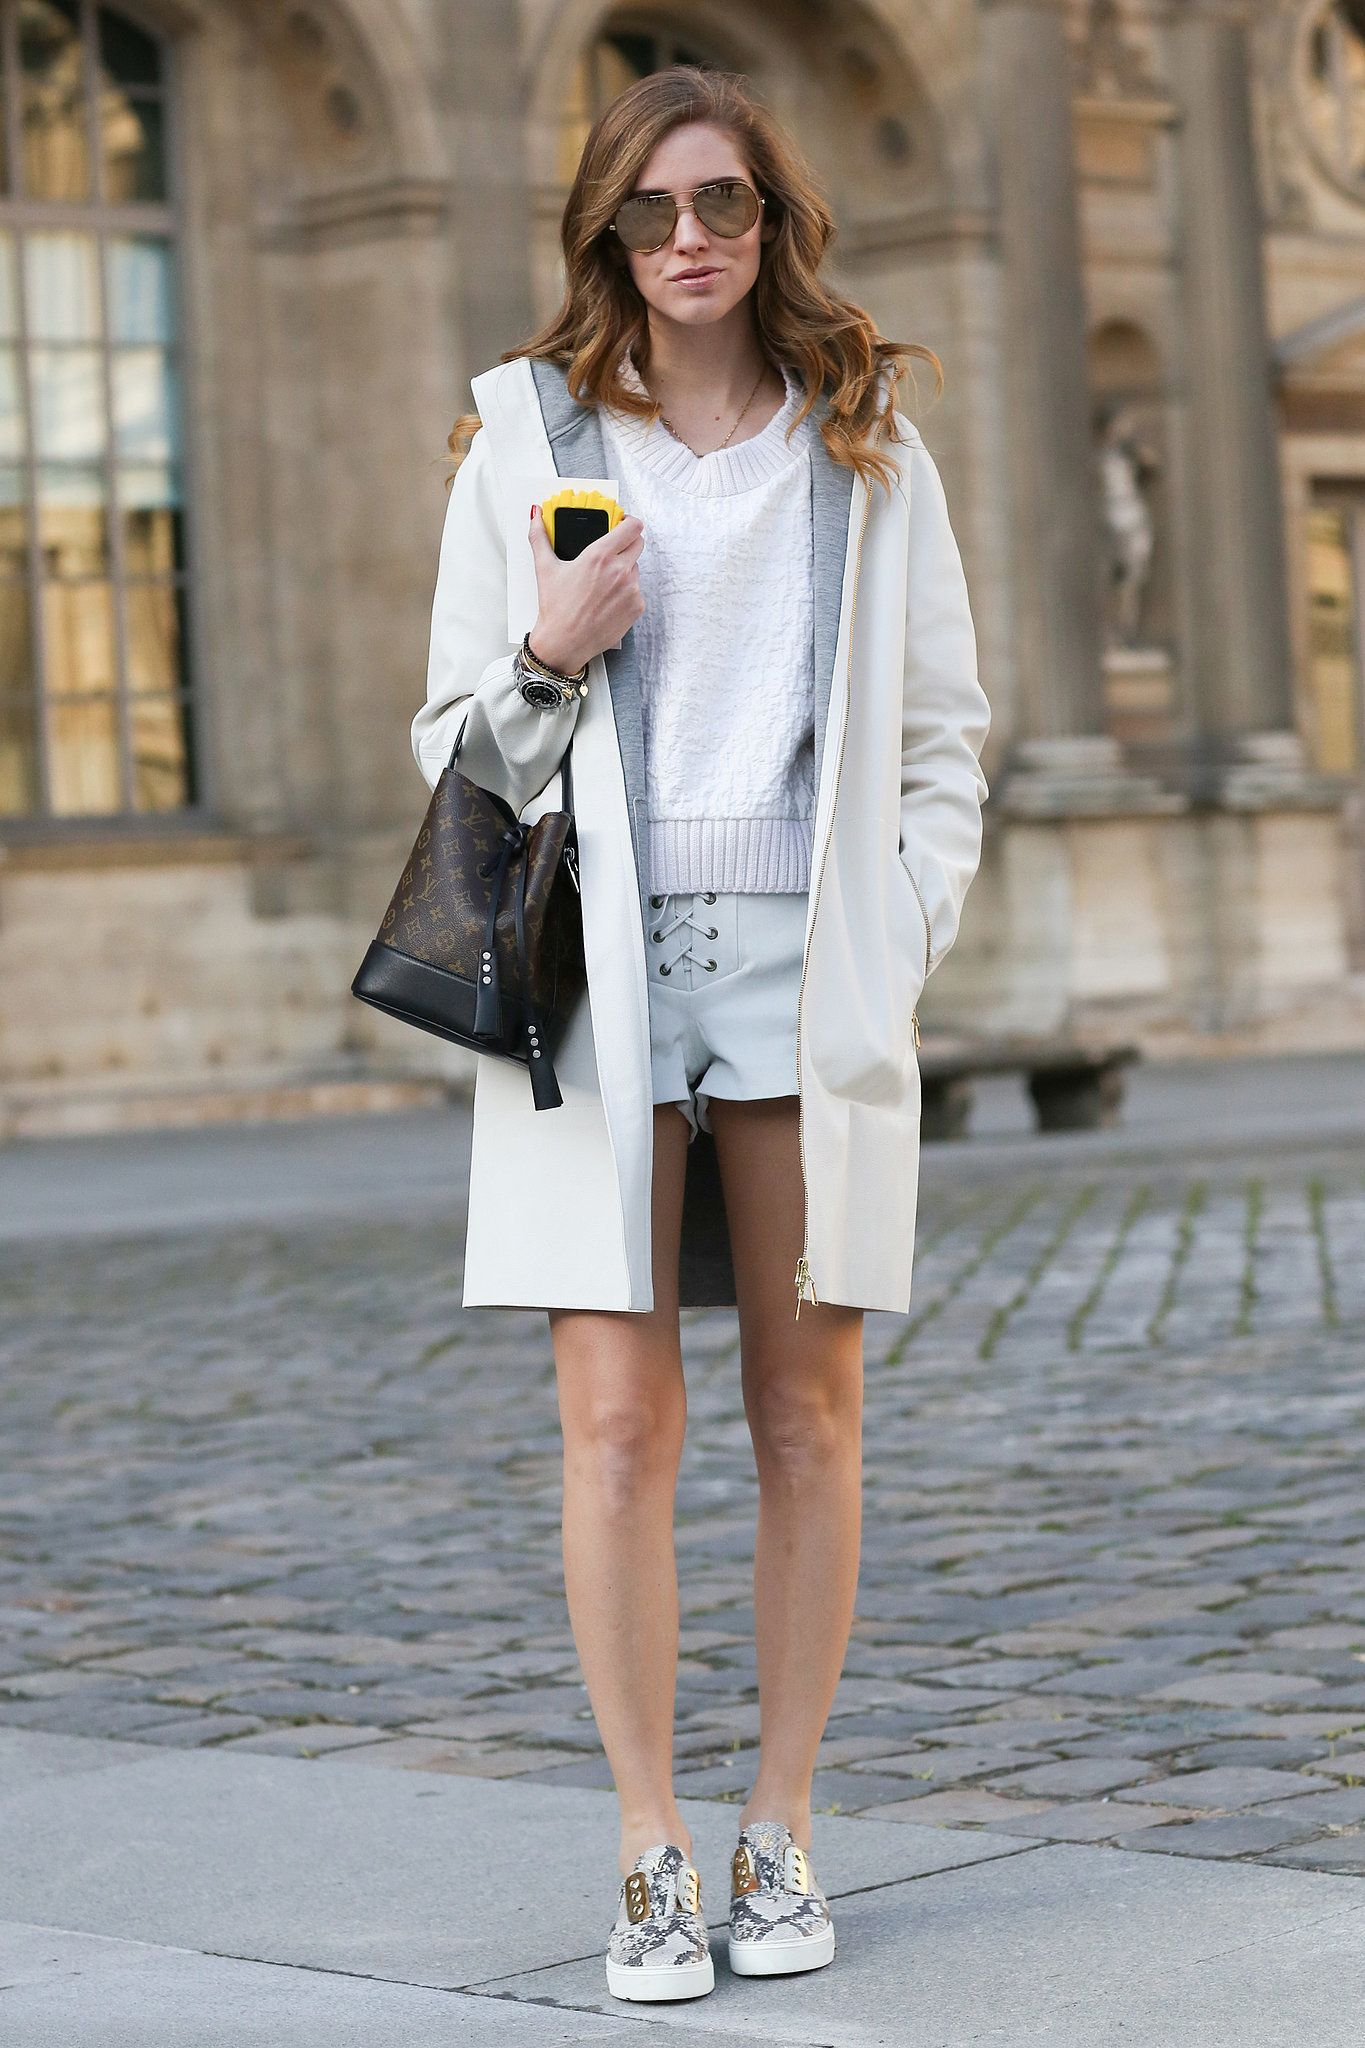 a1c38fe87a Chiara Ferragni s slip-ons lend just the right sporty vibe to finish off  her shorts and sweater combo.